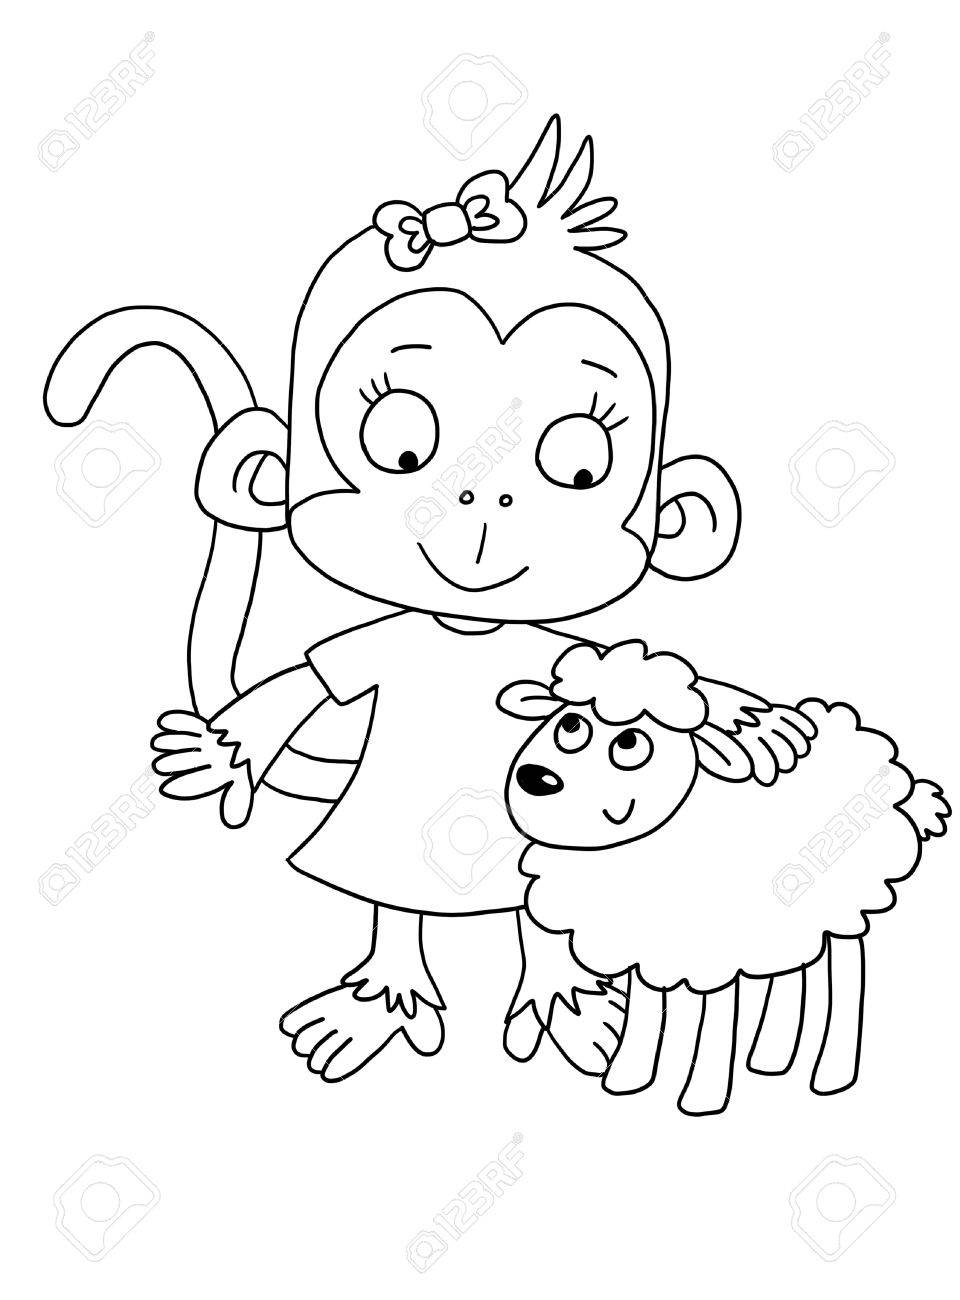 Cute monkey with lamb coloring page